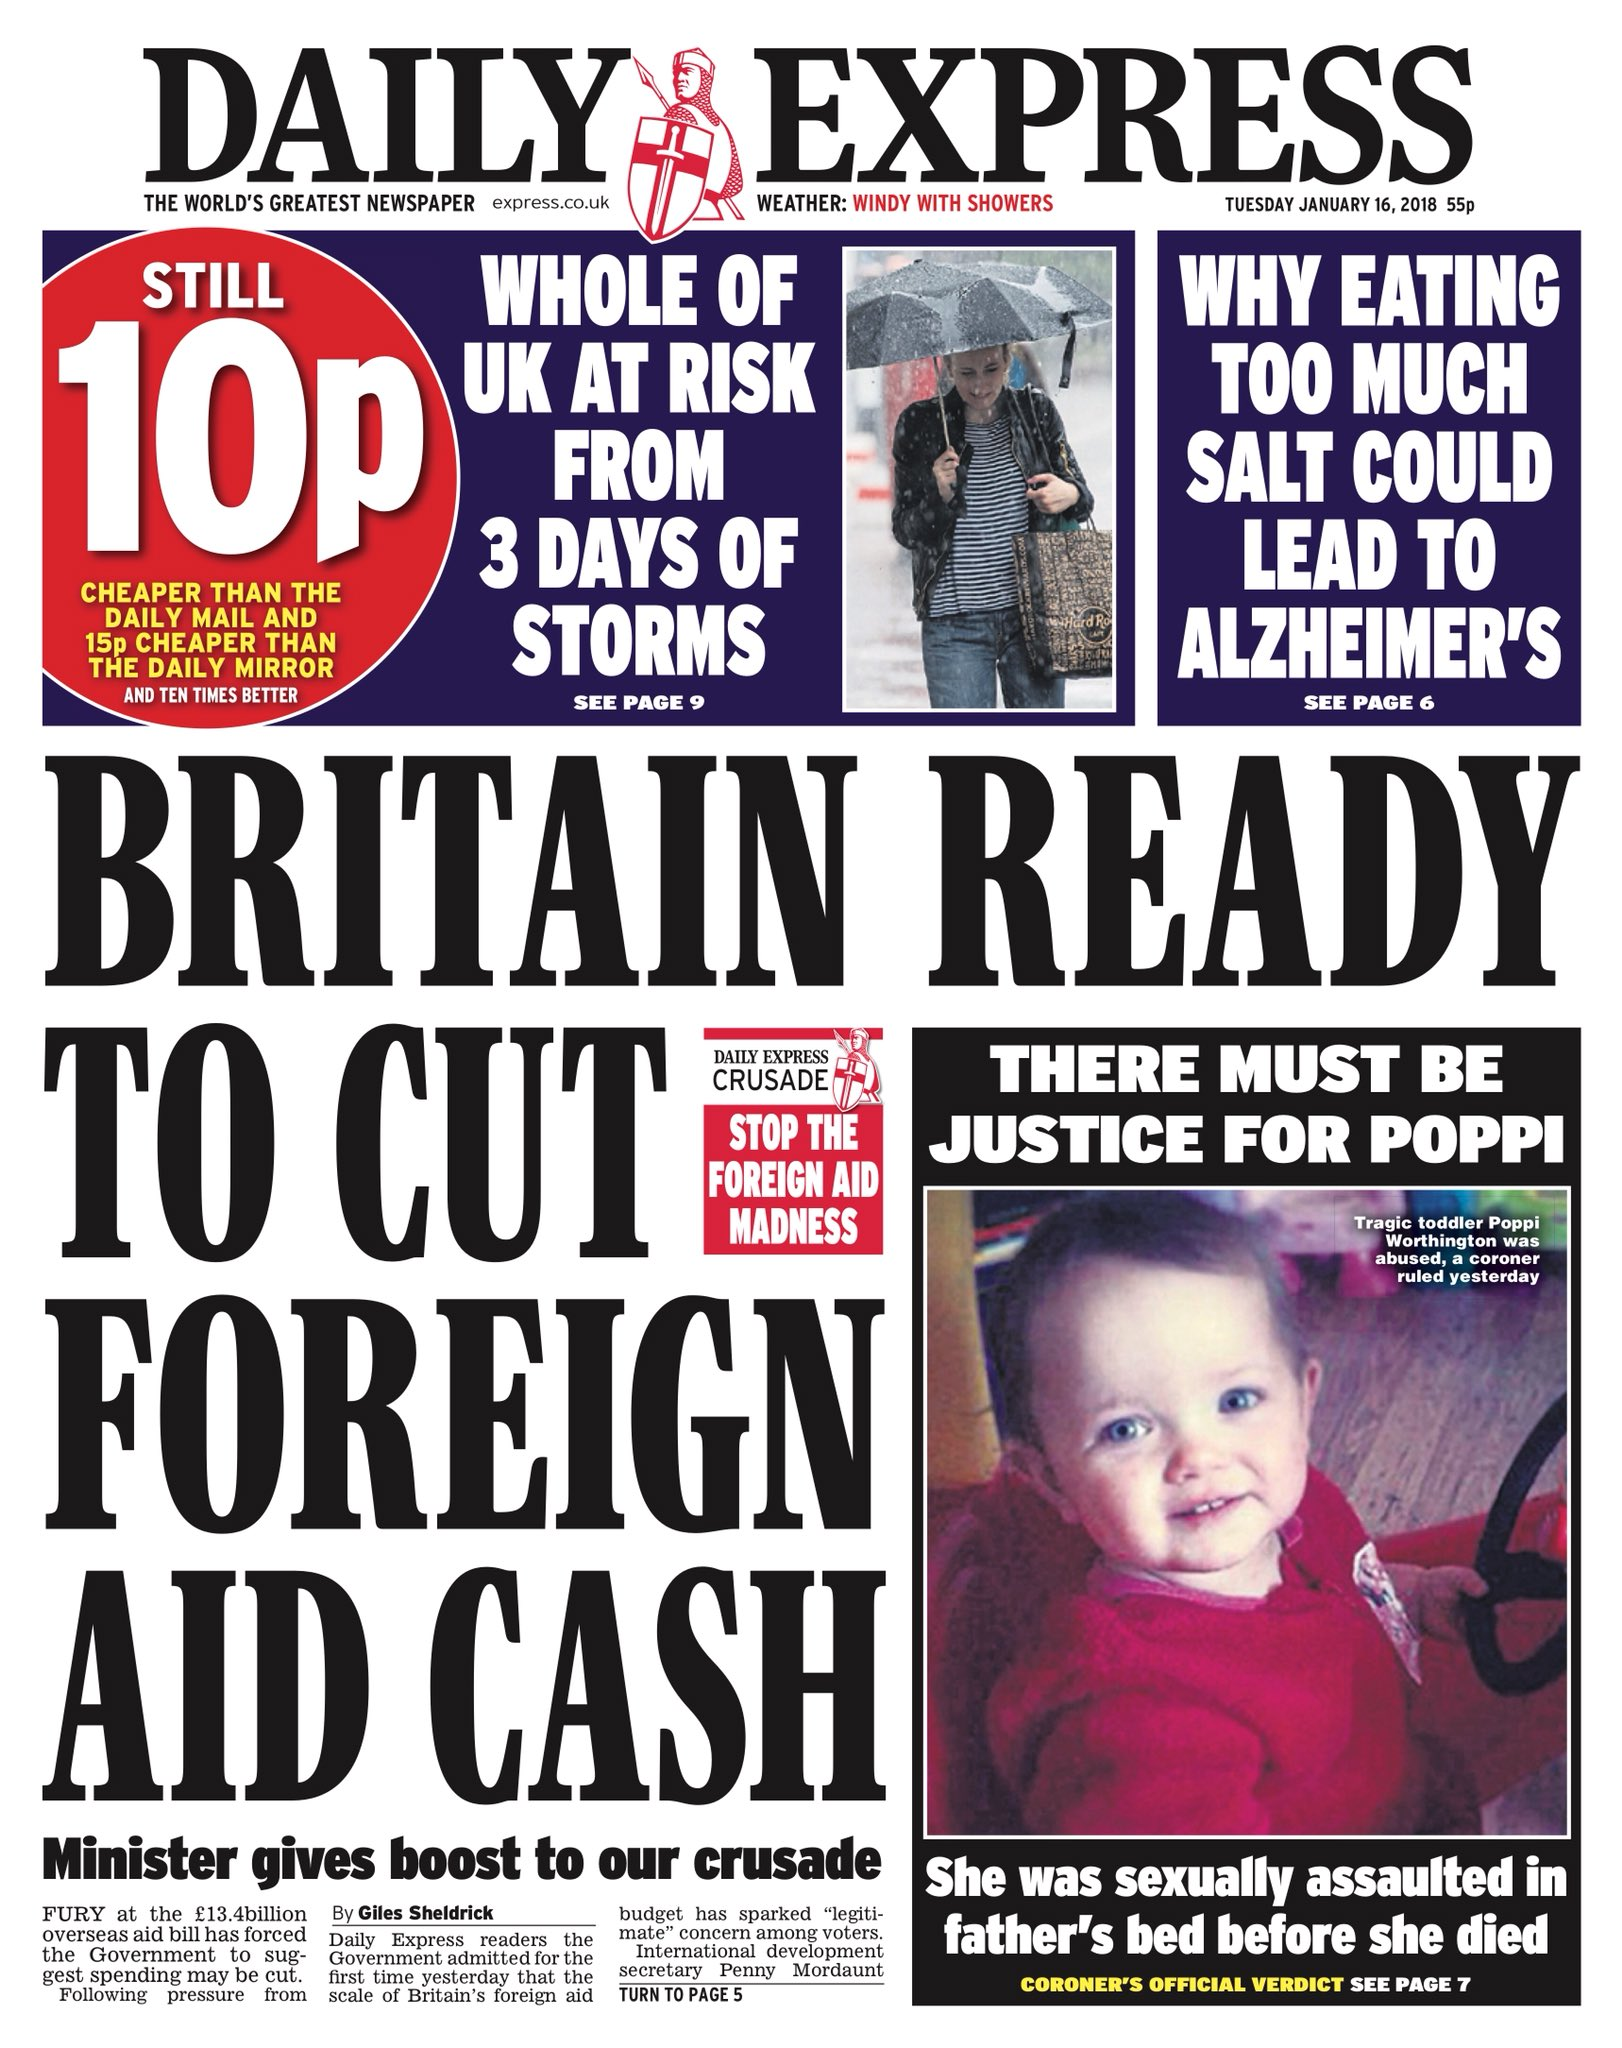 Tuesday's Express 'Britain ready to cut foreign aid cash'  #tomorrowspaperstoday #bbcpapers (via @hendopolis) https://t.co/ECcS86mHIr